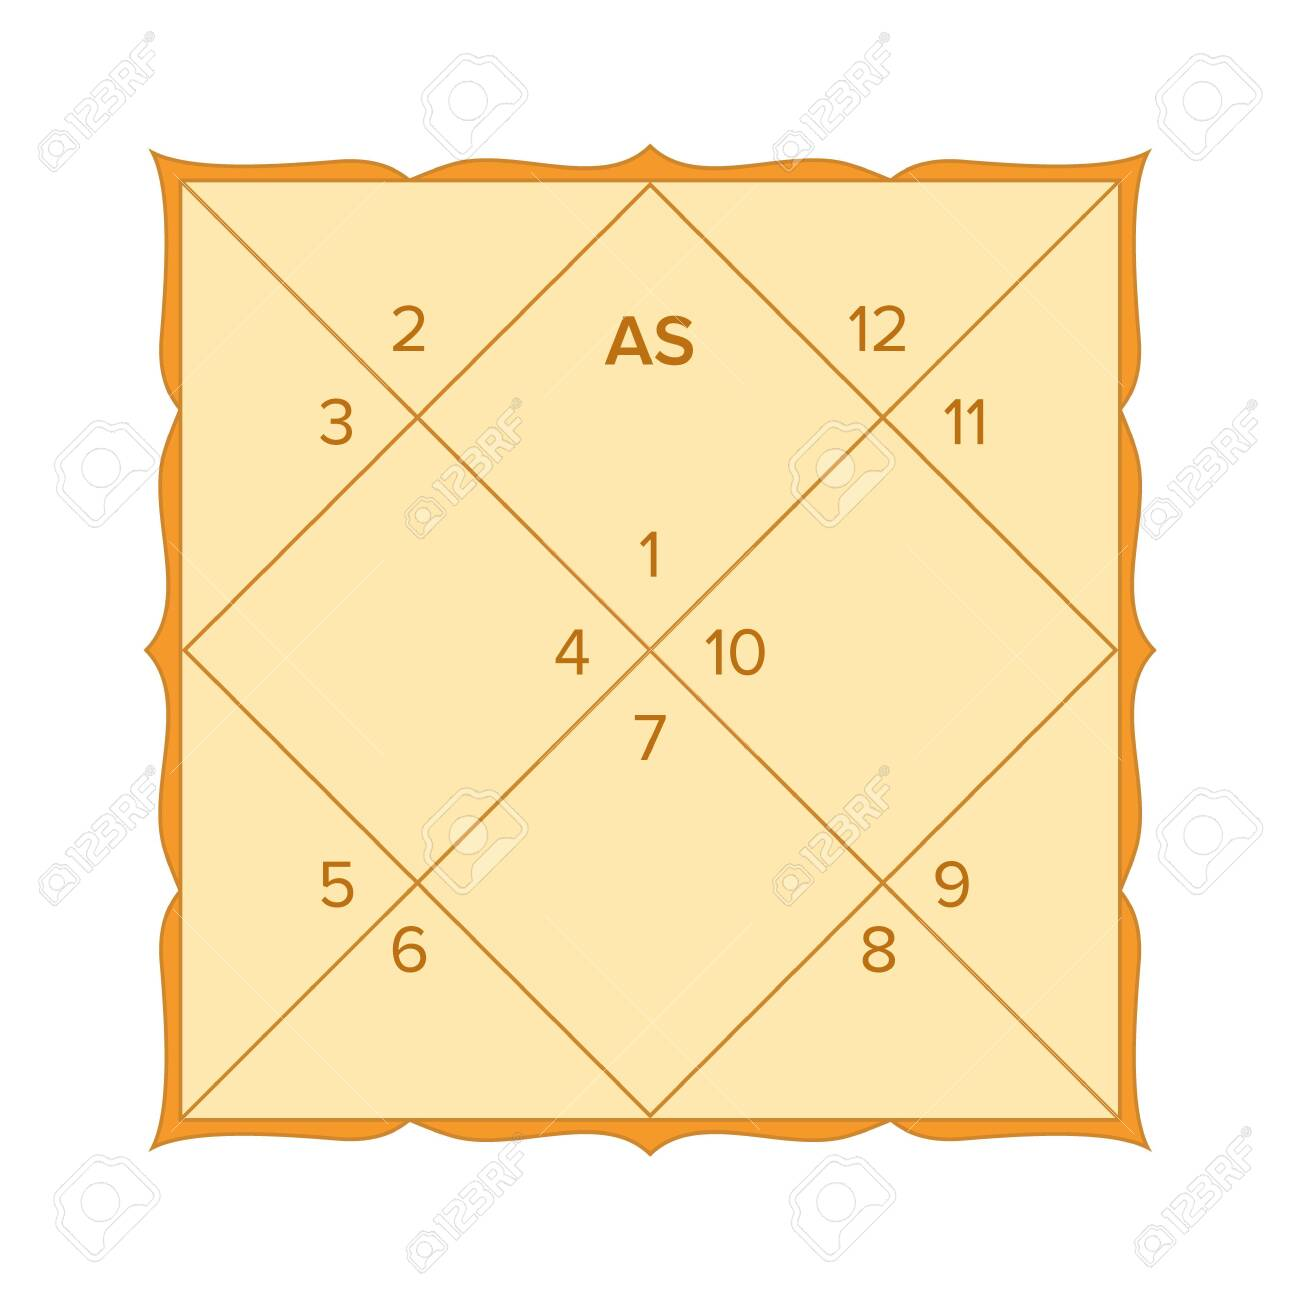 Vedic astrology birth chart template in northern indian diamond style. Jyothish calculator form. Hindu astrological horoscope maps. Lagna diagram in the shape of a yantra. - 142560425